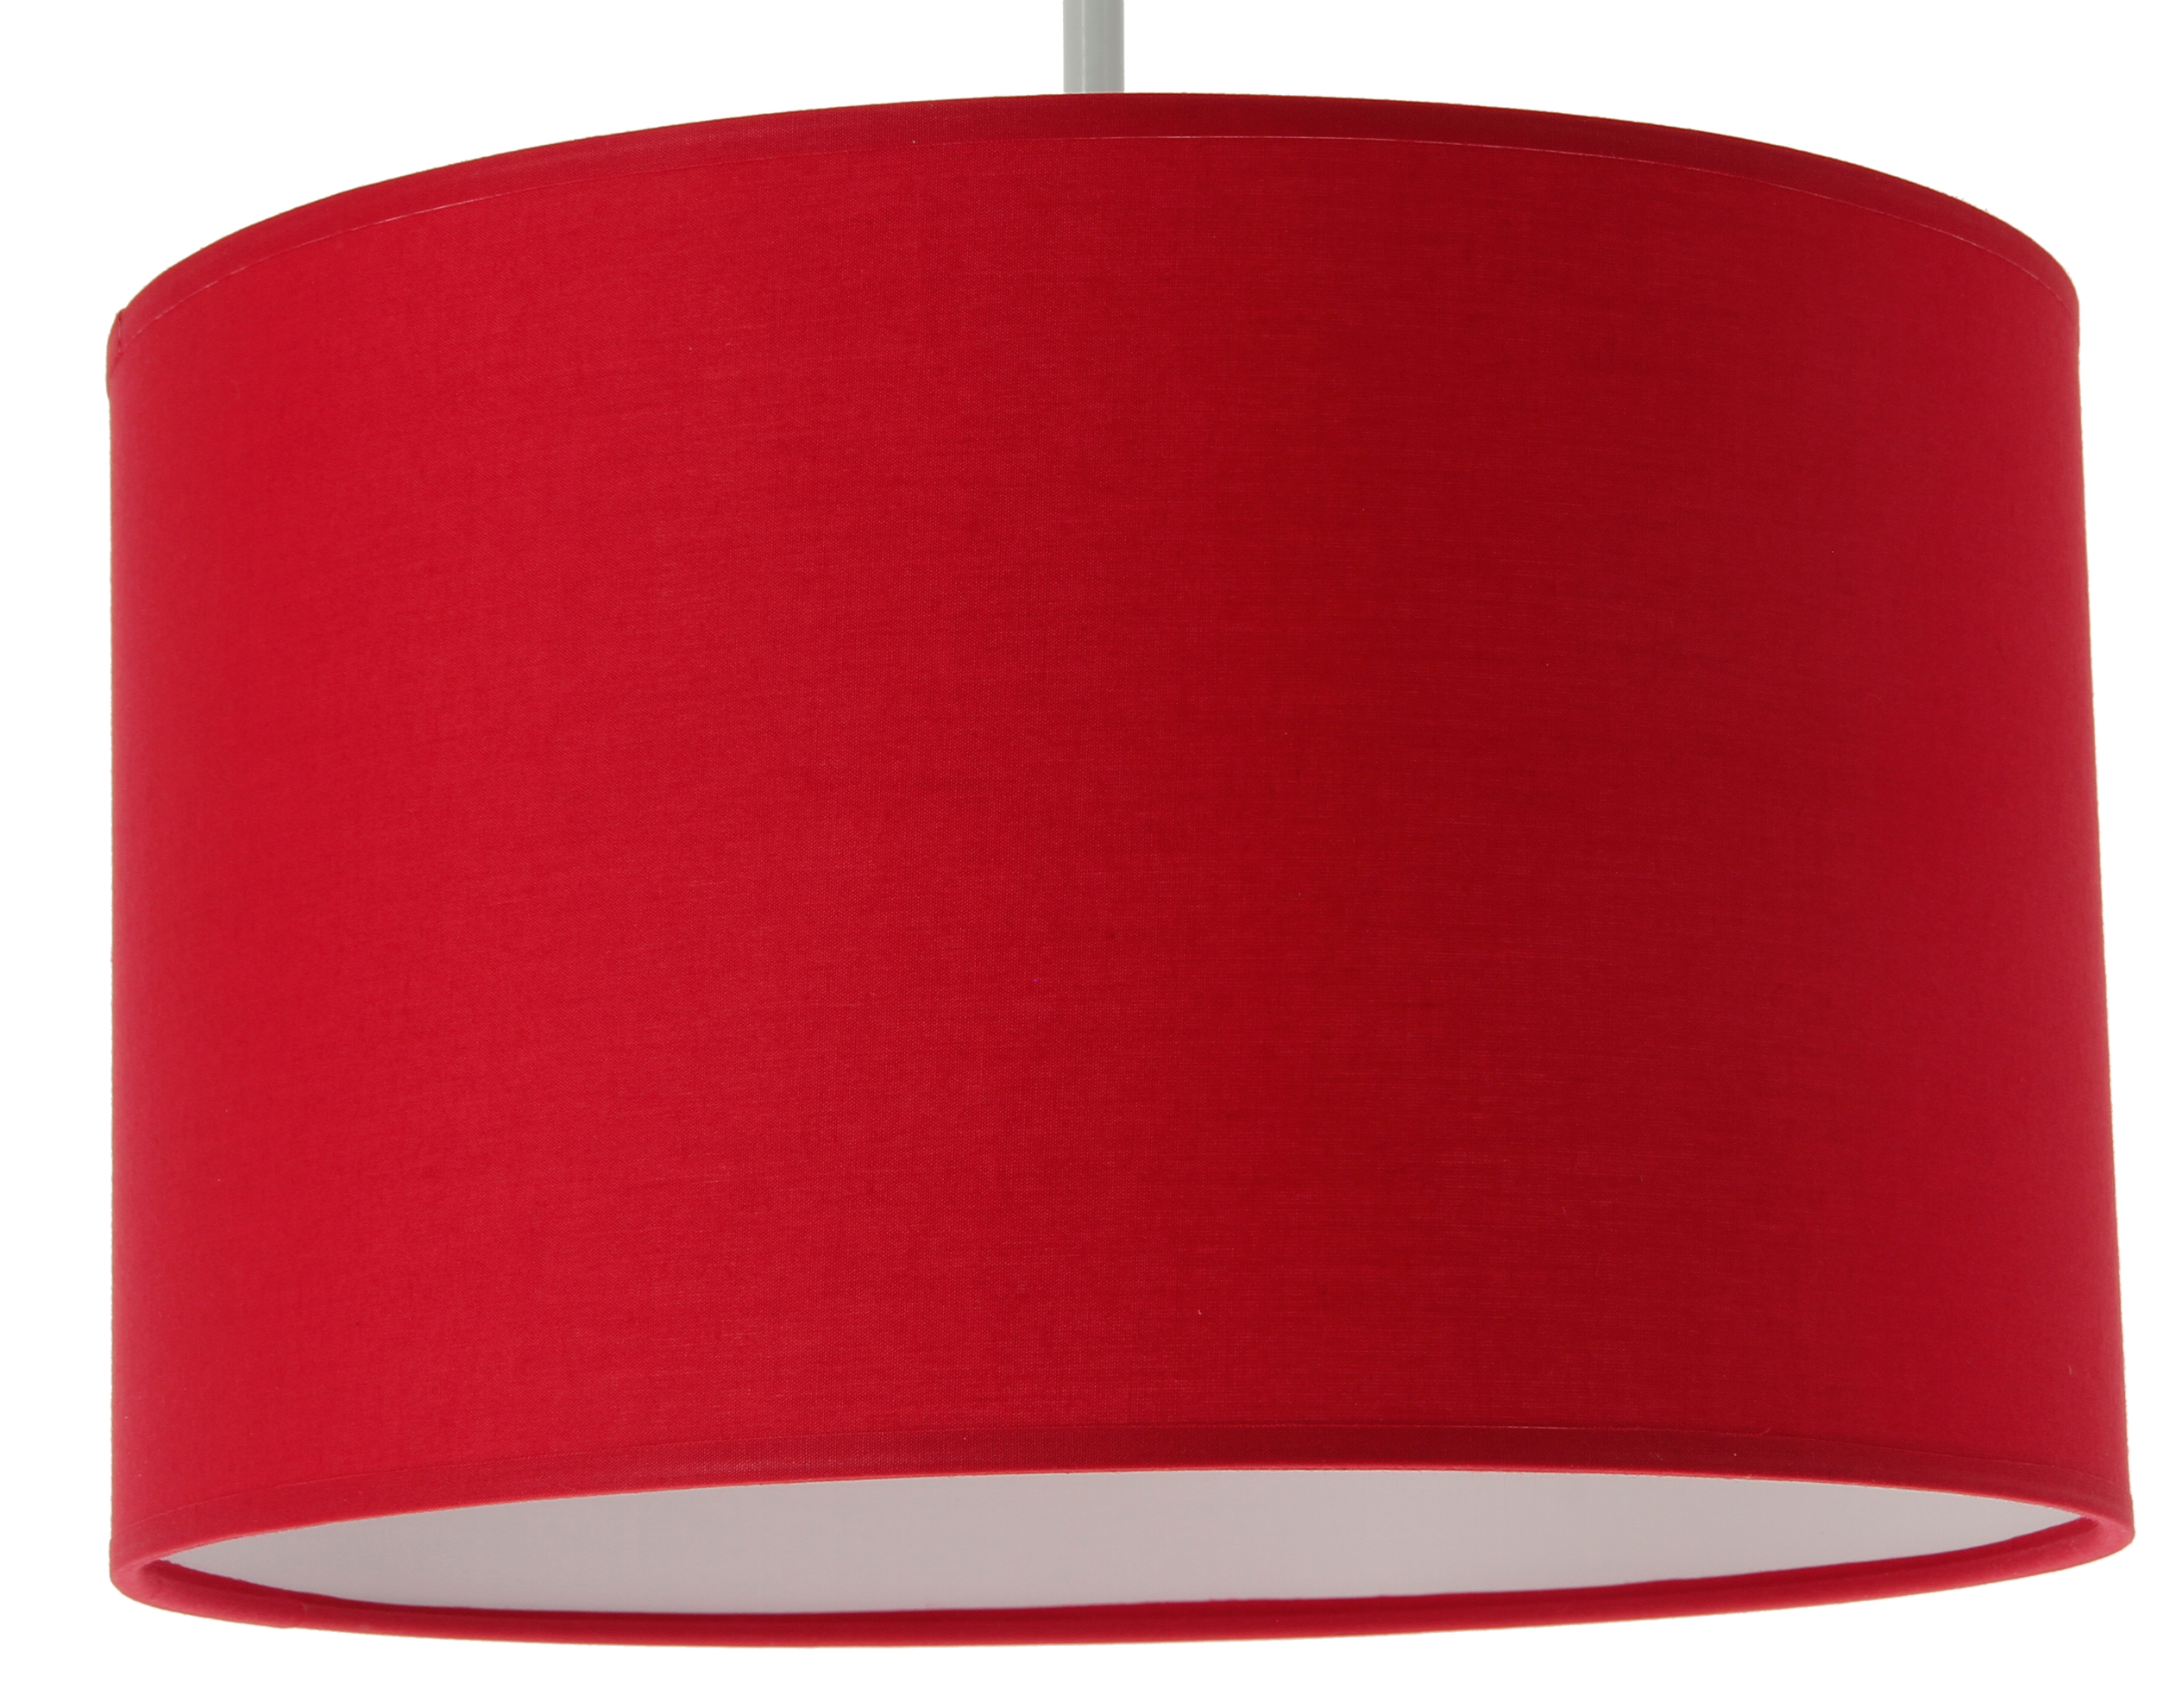 Suspension Cylindre Coton Rouge